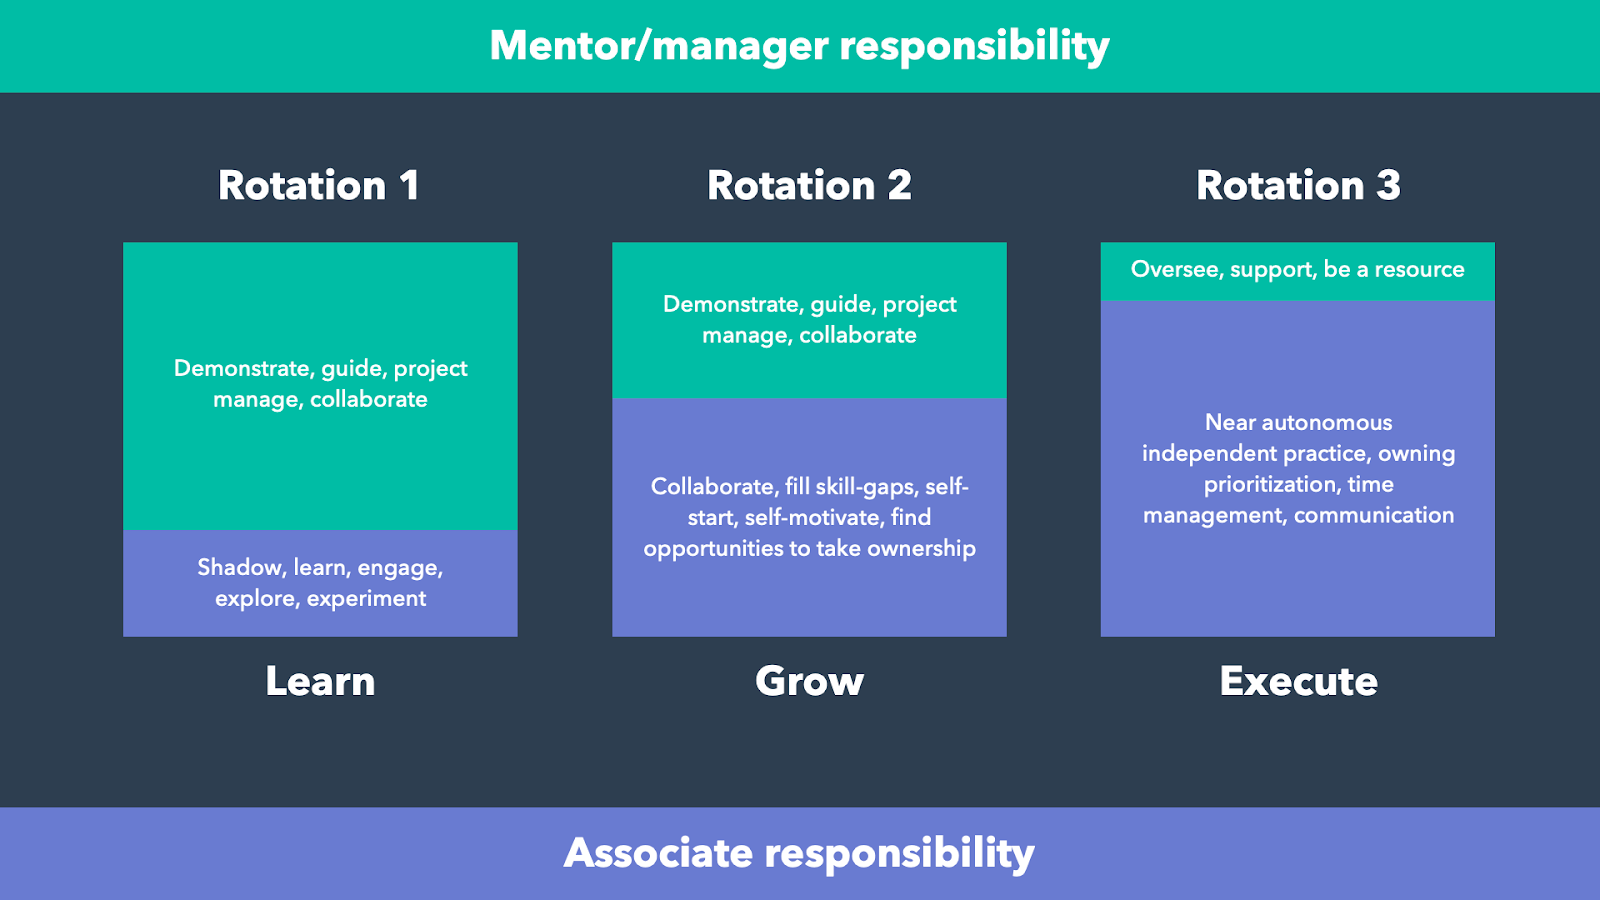 A chart detailing the different responsibilities of manager and associate during each of the three rotations. The associate takes on more and more responsibility by the third and final rotation.